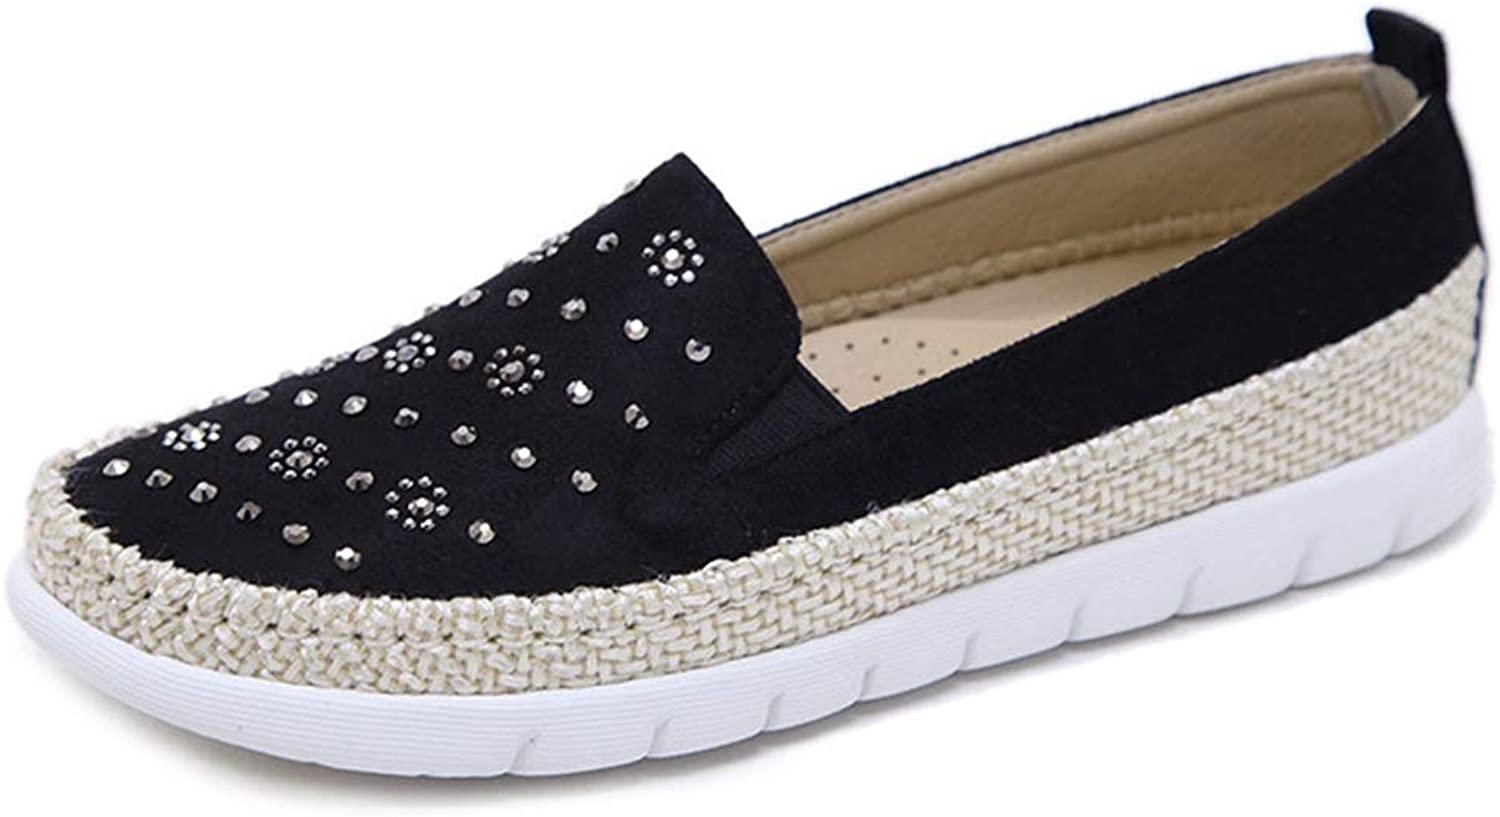 CYBLING Women's Fashion Rivet Loafers Slip-On Espadrille Casual Boat Driving Flat shoes